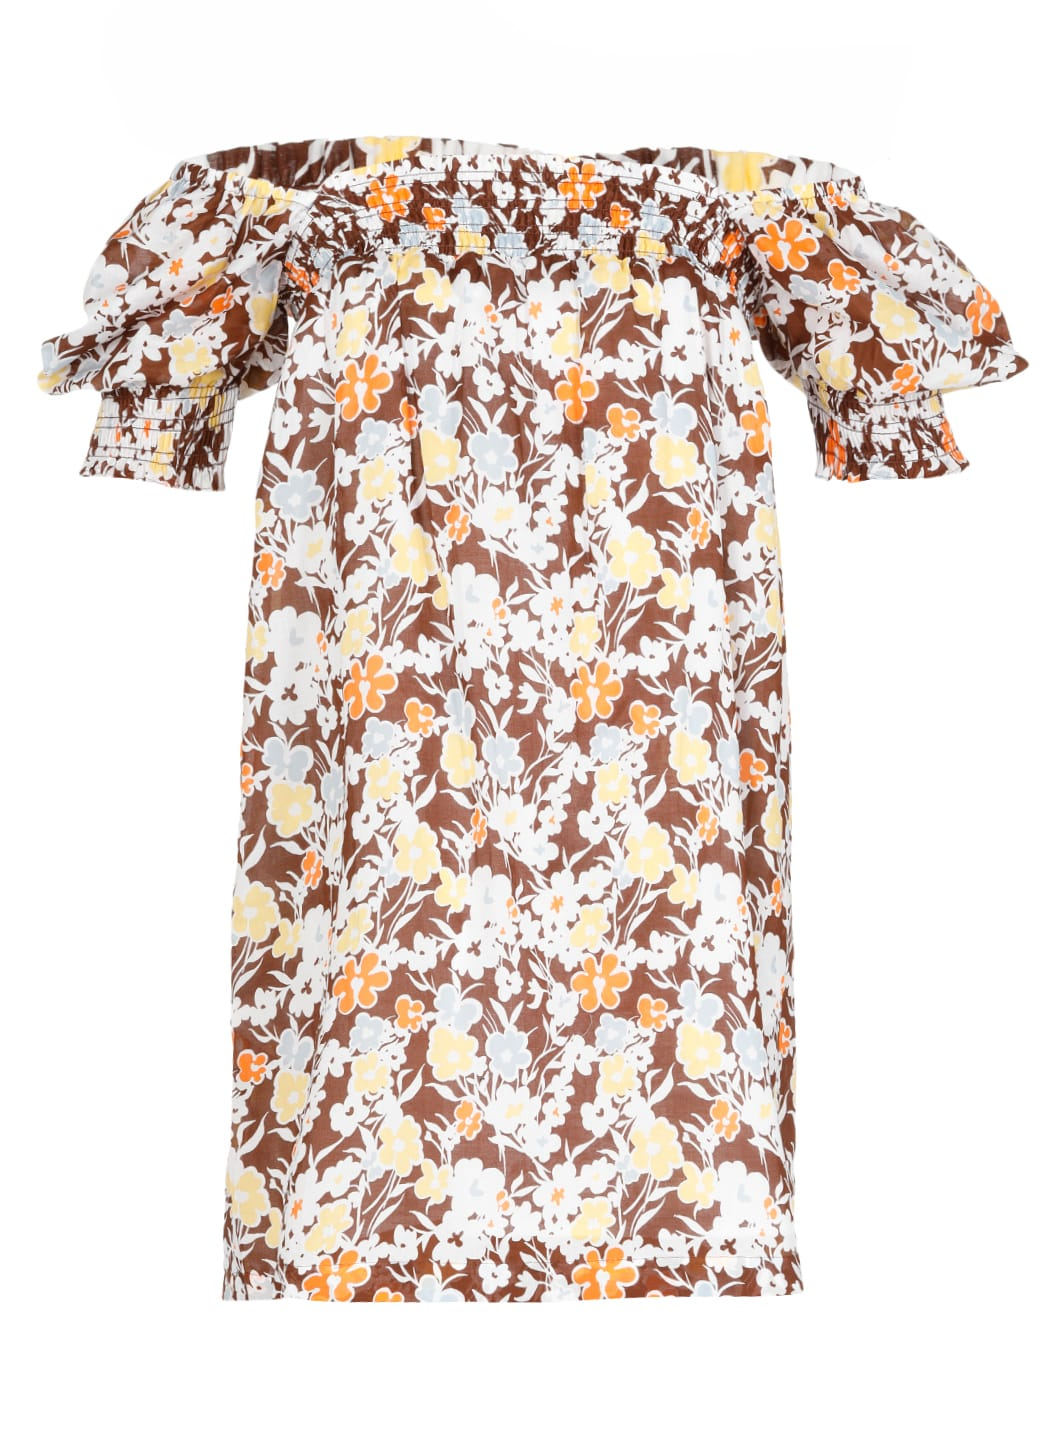 Buy Tory Burch Cotton Dress With Floral Pattern online, shop Tory Burch with free shipping